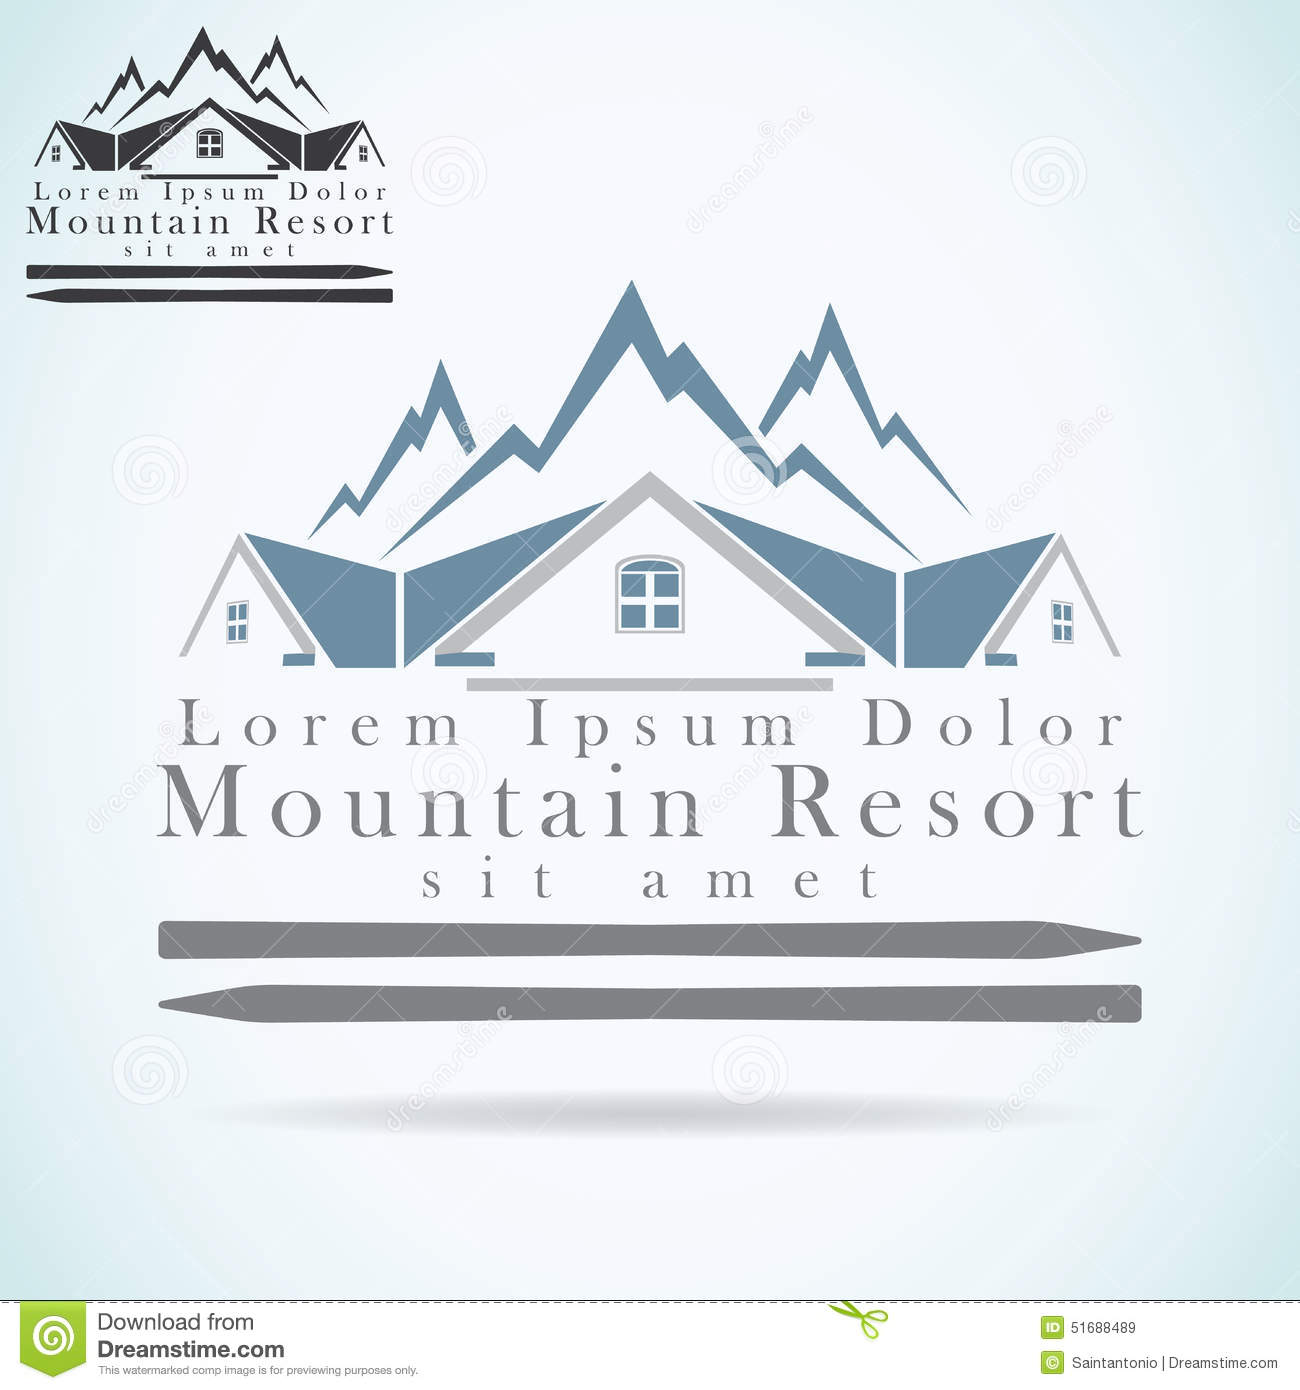 Amsterdam Manor Beach Resort Logo Png